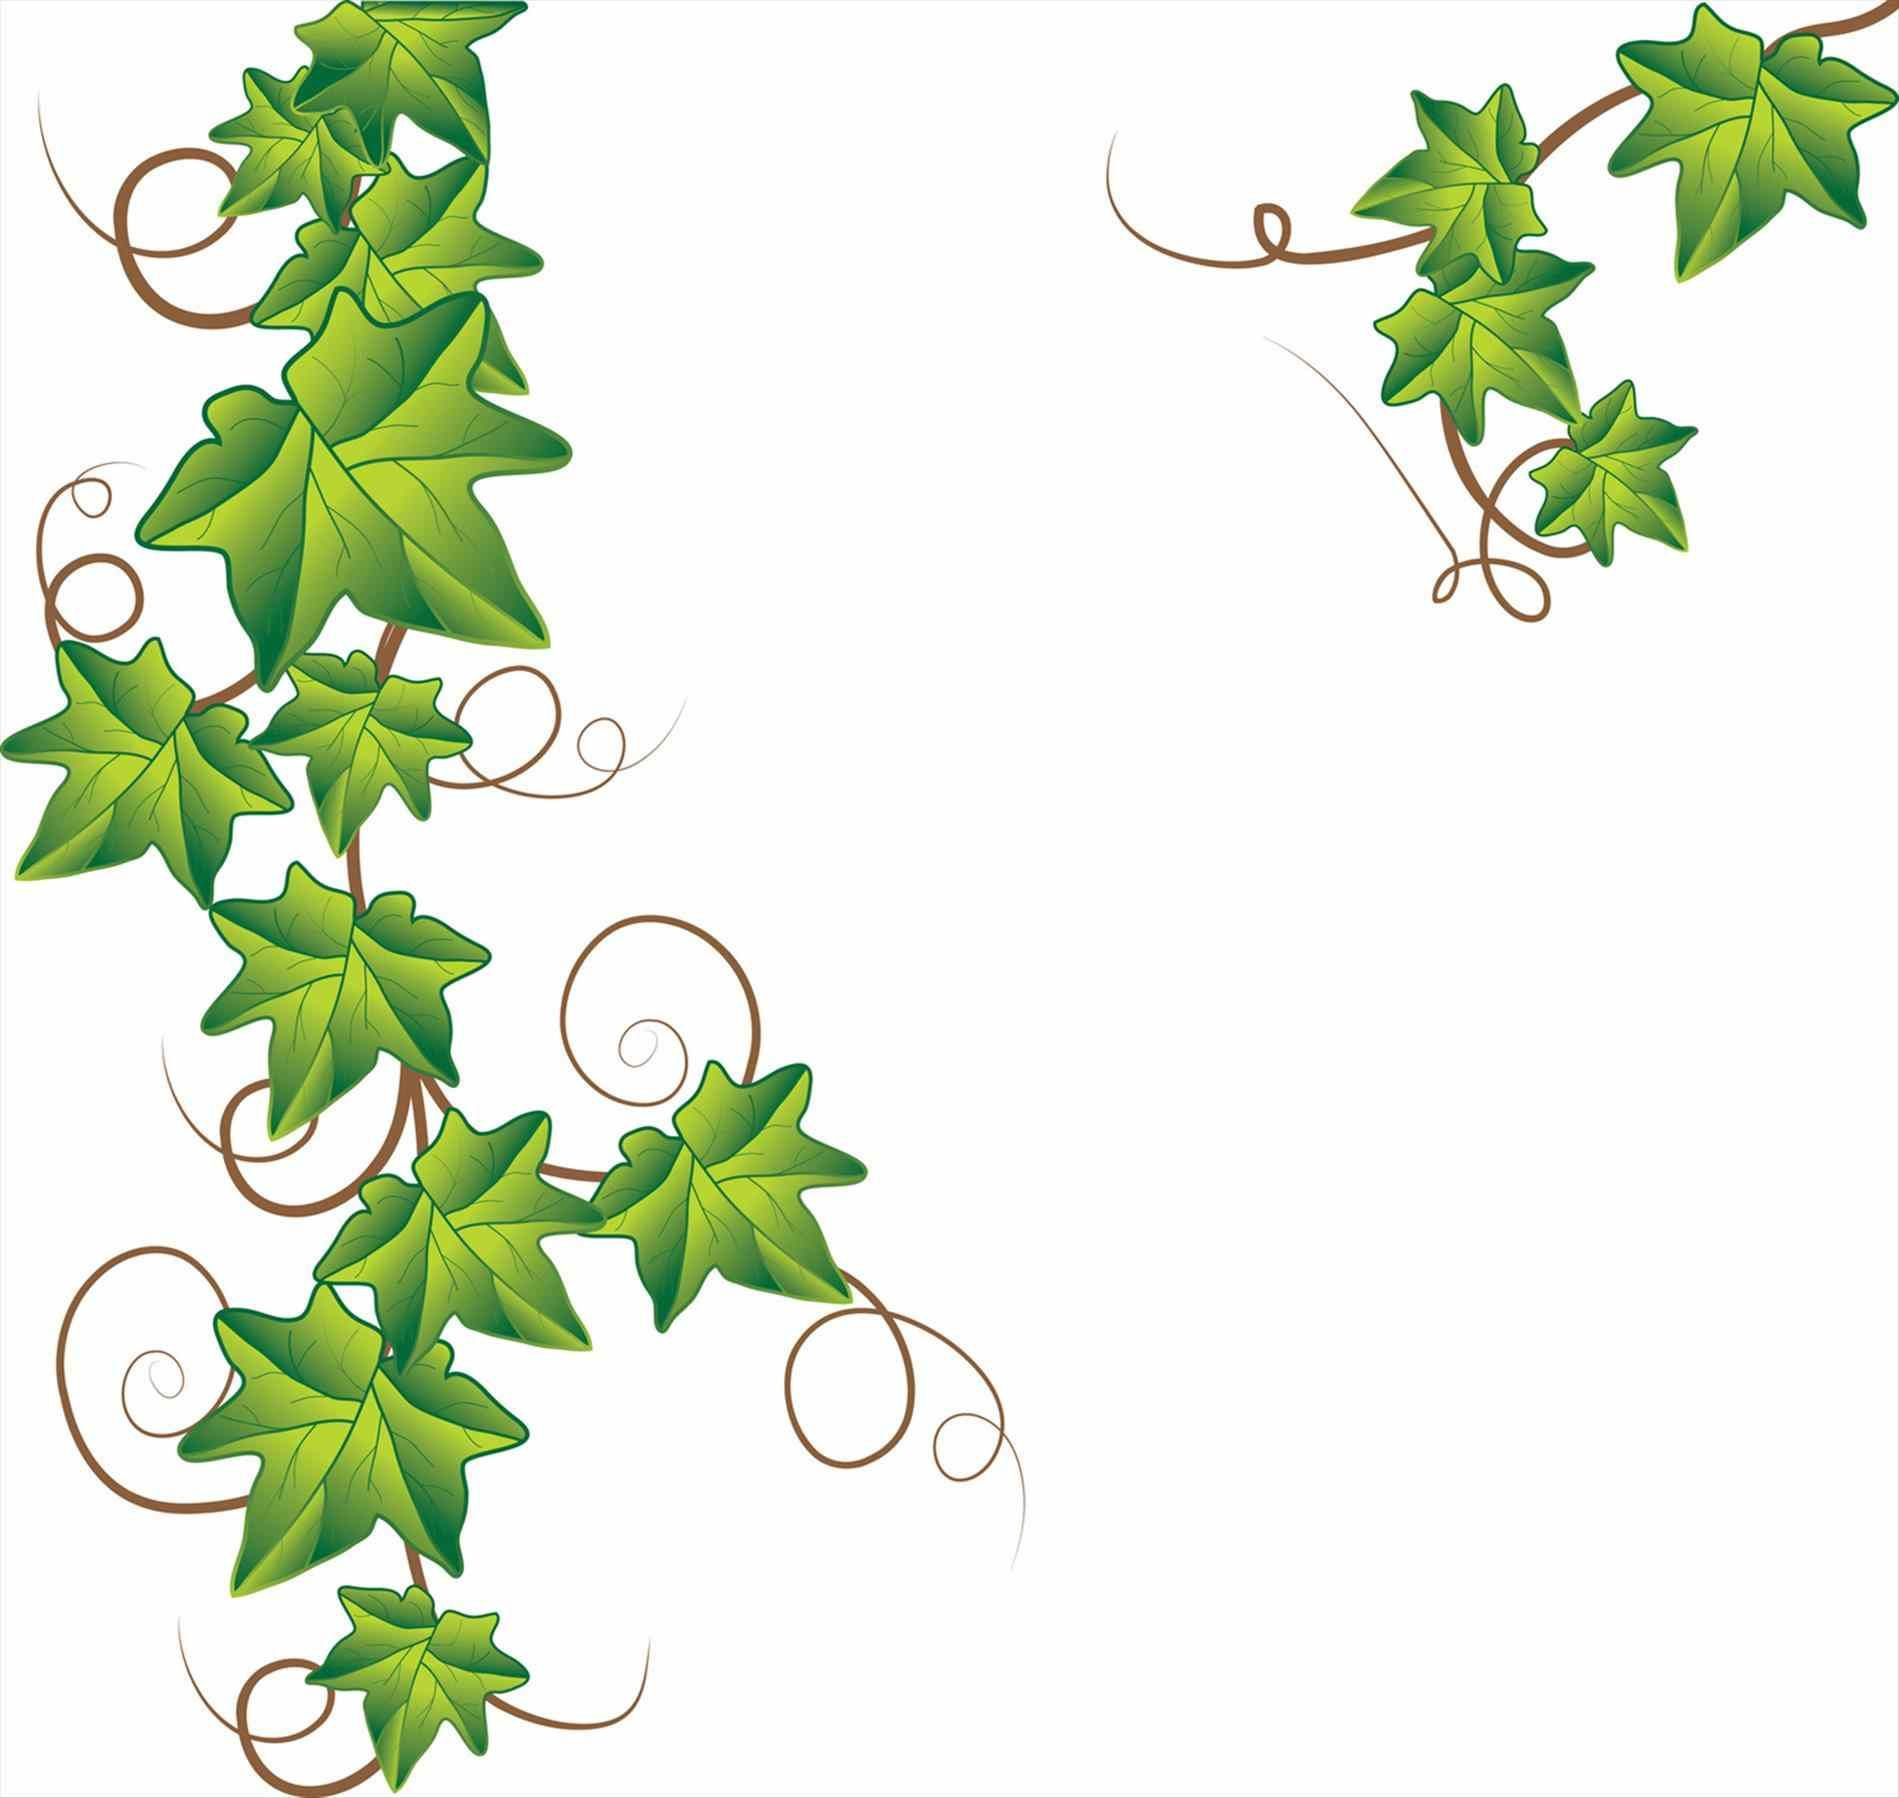 Ivy poison ivy plant drawing plant clip art clipart.